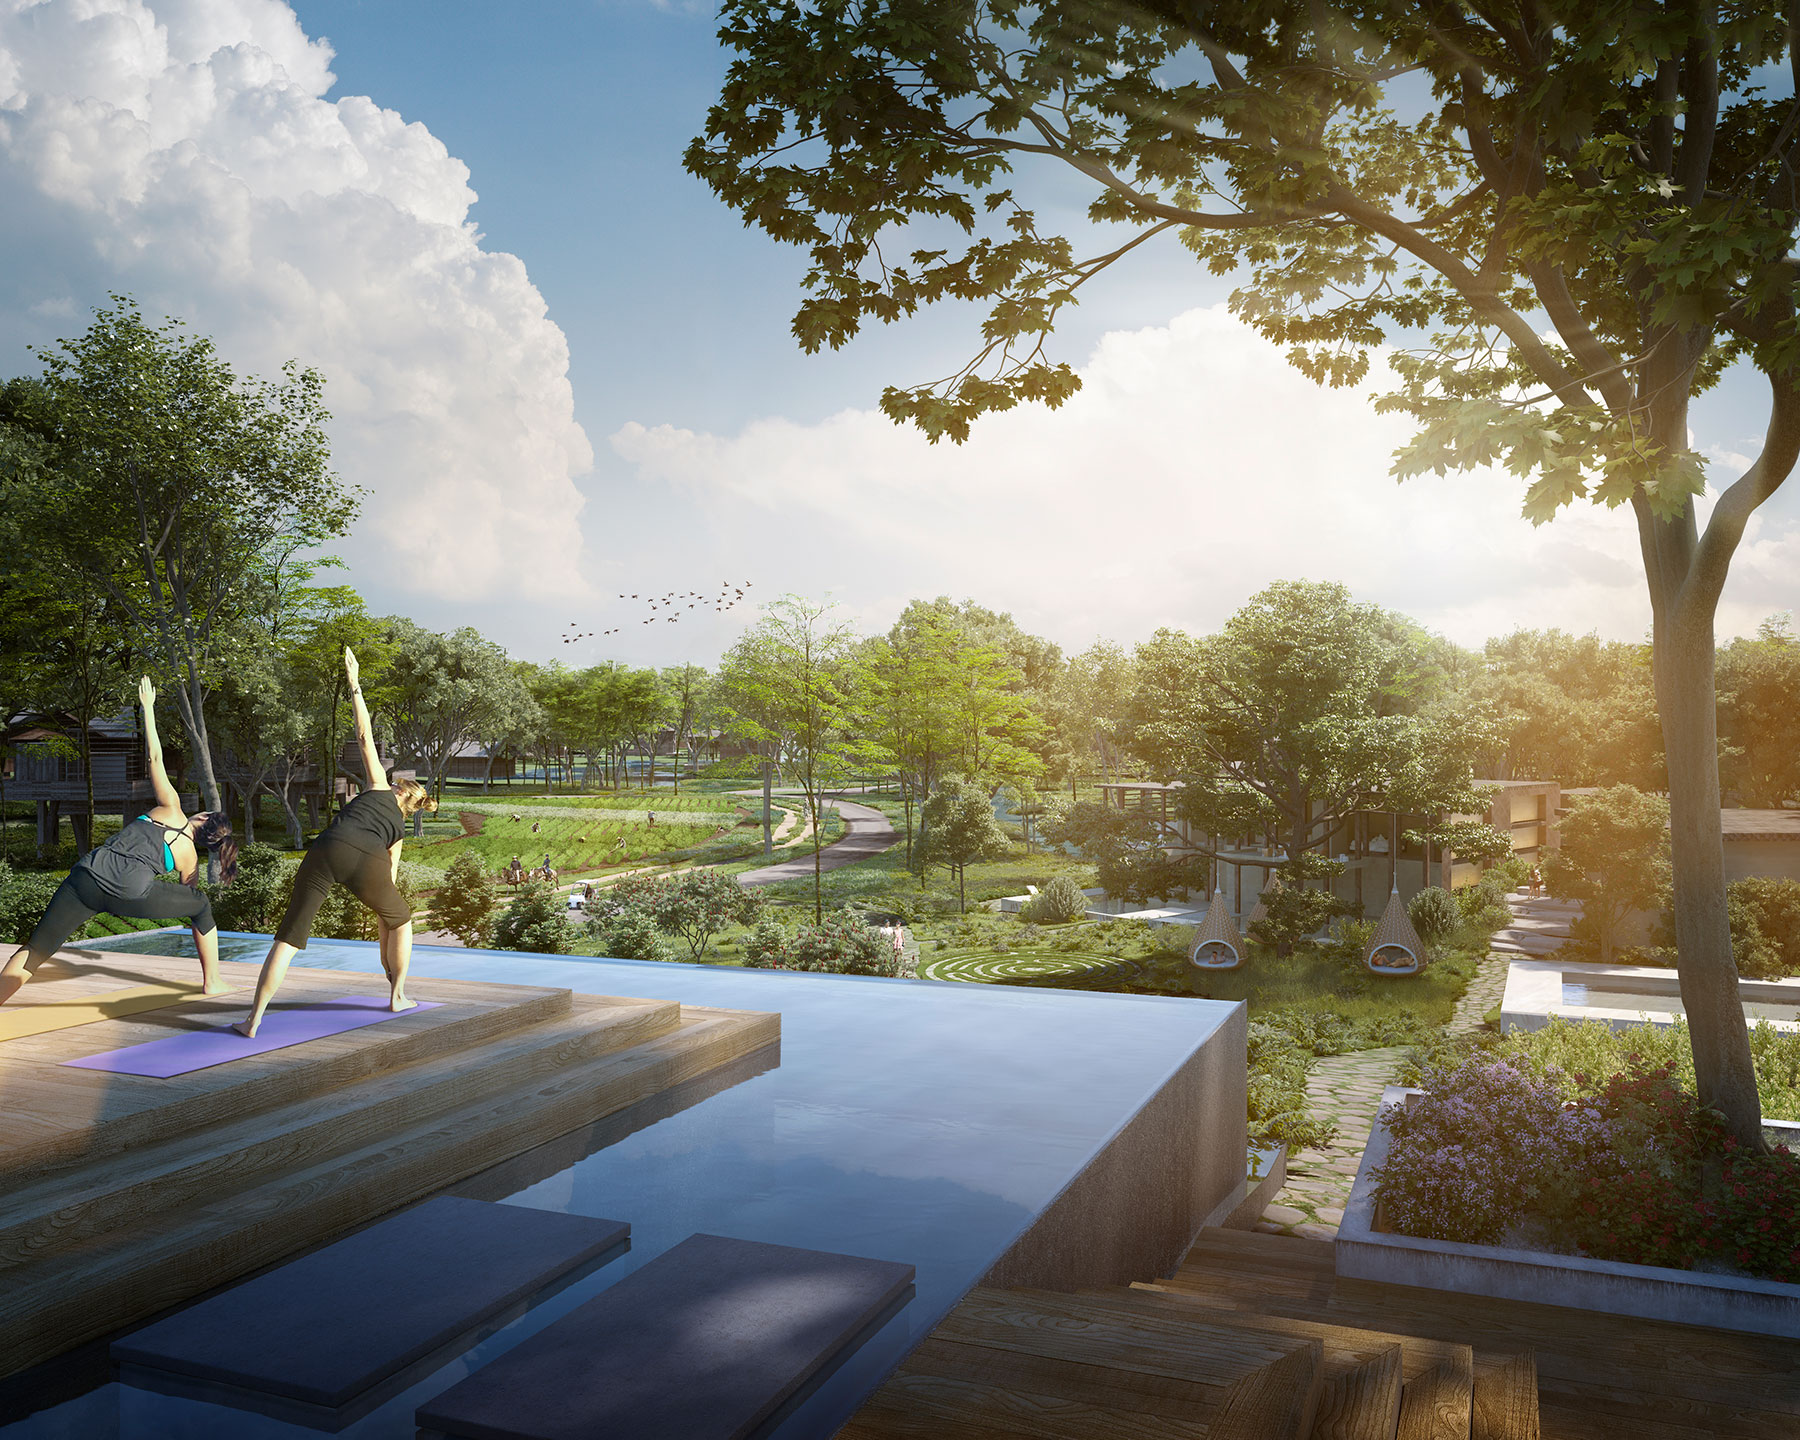 3D yoga resort in forest